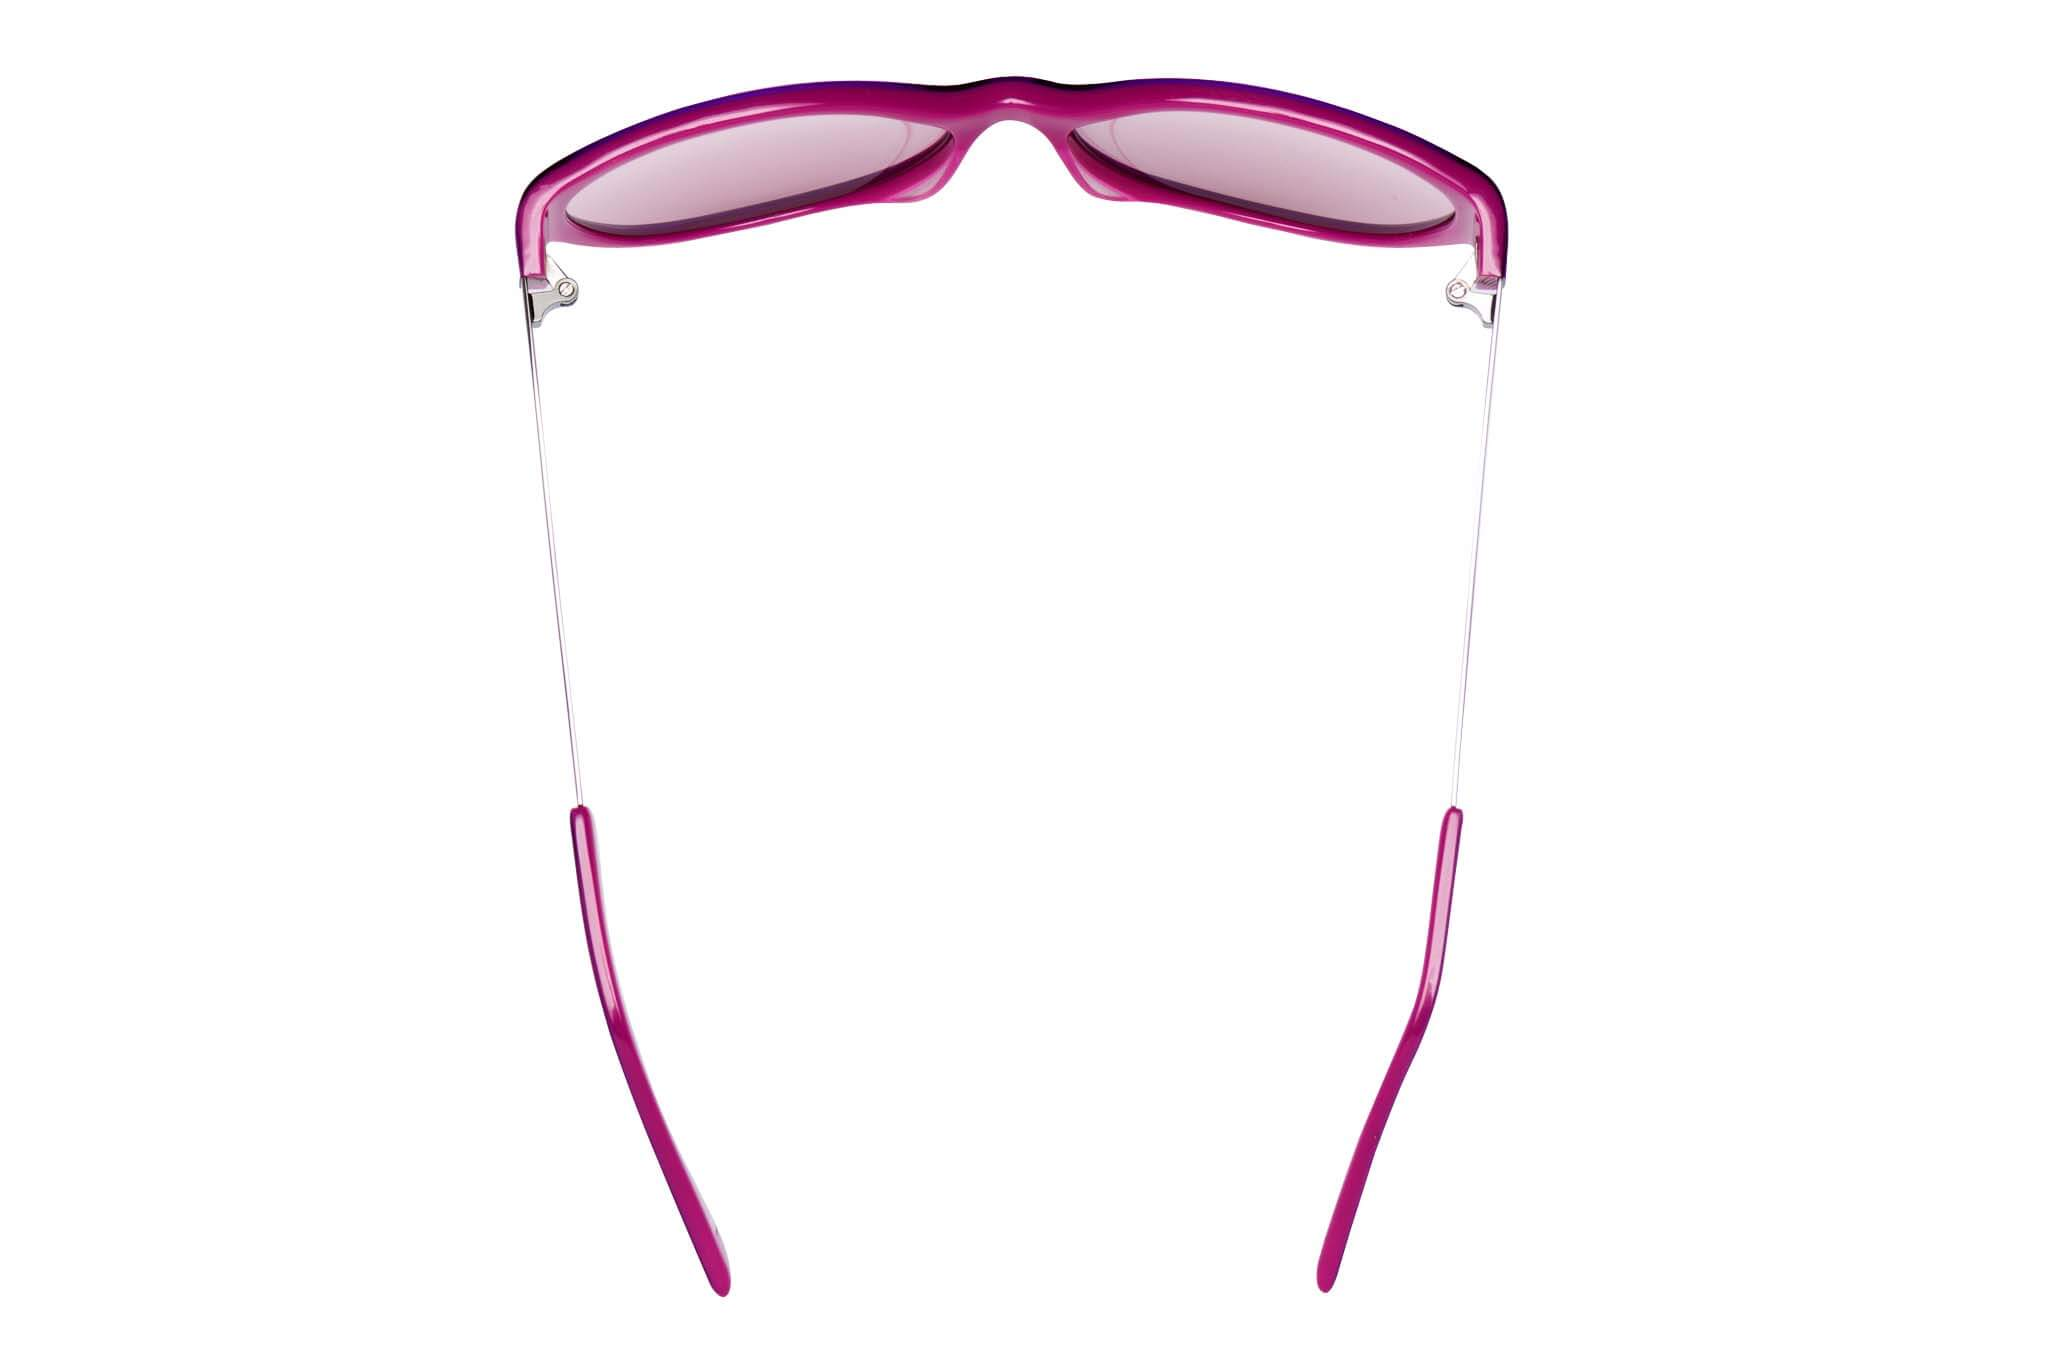 Axon Optics Migraine Relief Glassess Natural Relief from Migraines, Light Sensitivity, and Visual Snow   OnlyinthisHead.com   Chronic Illness Life with Ehlers-Danlos Syndrome